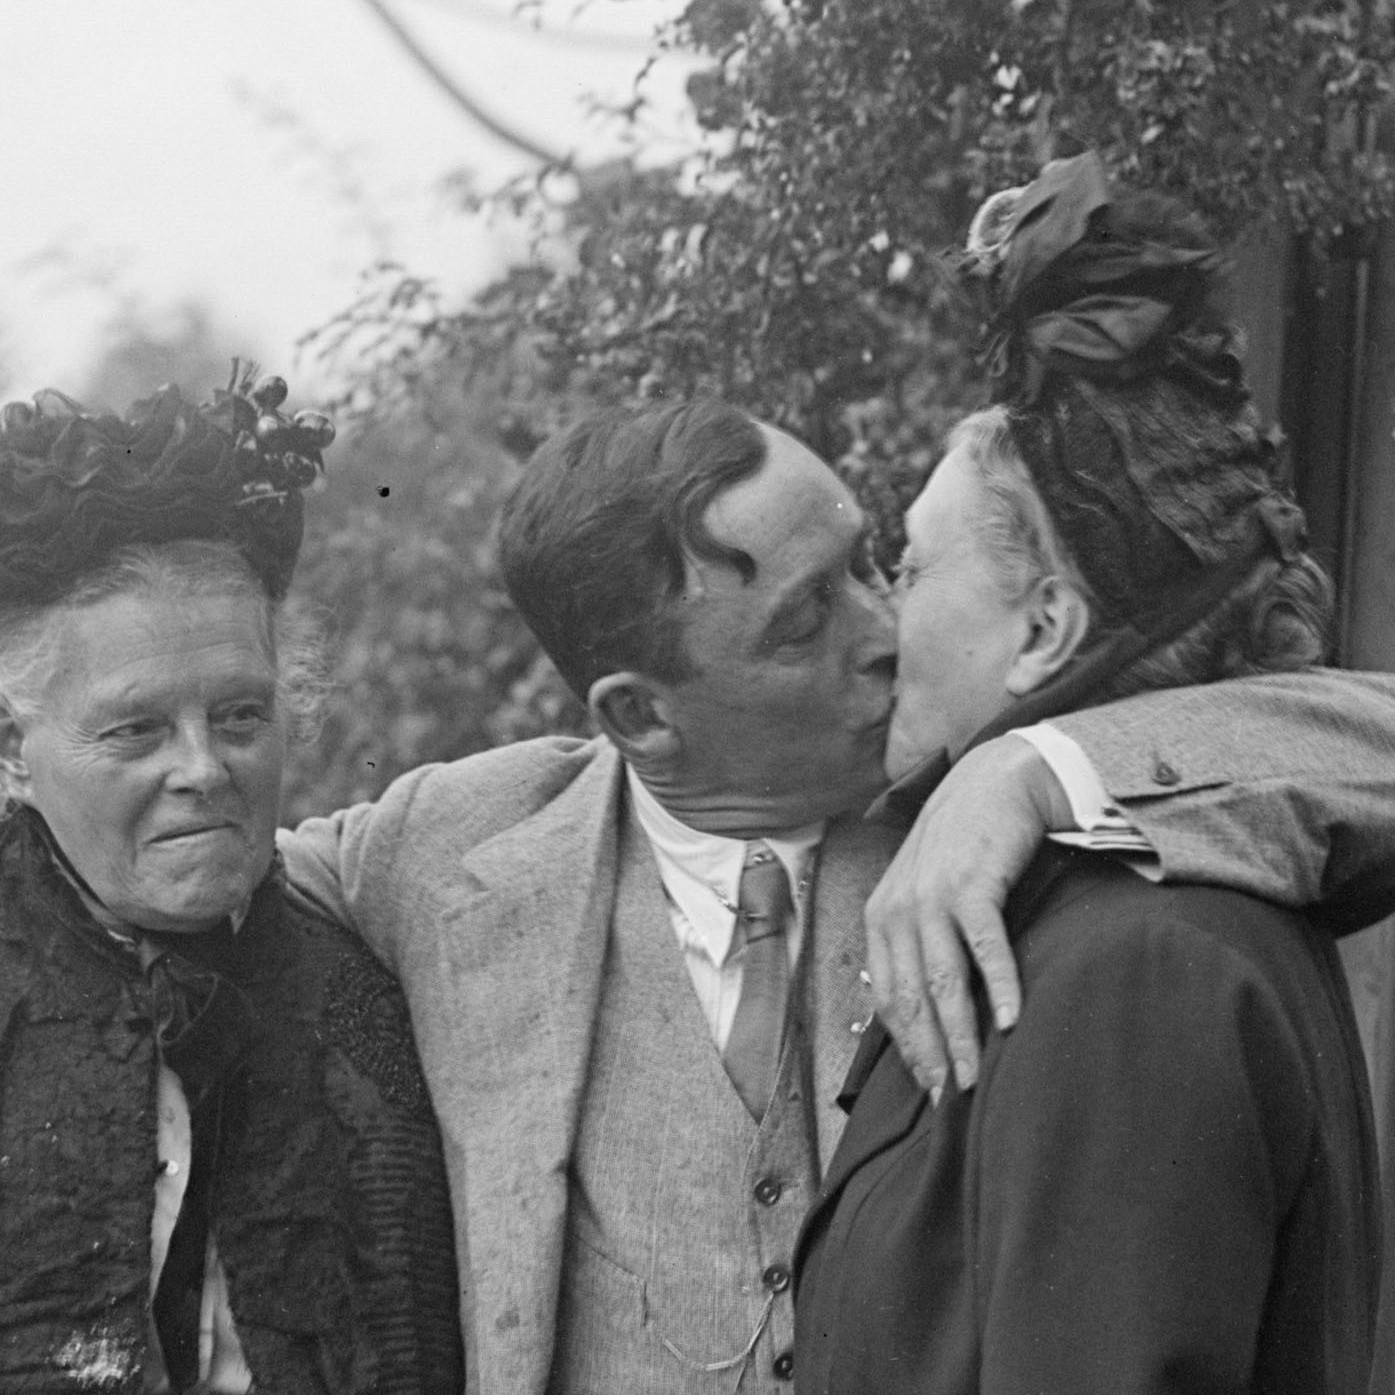 If it were a movie, it would be called The Third Wheel by Orson Welles